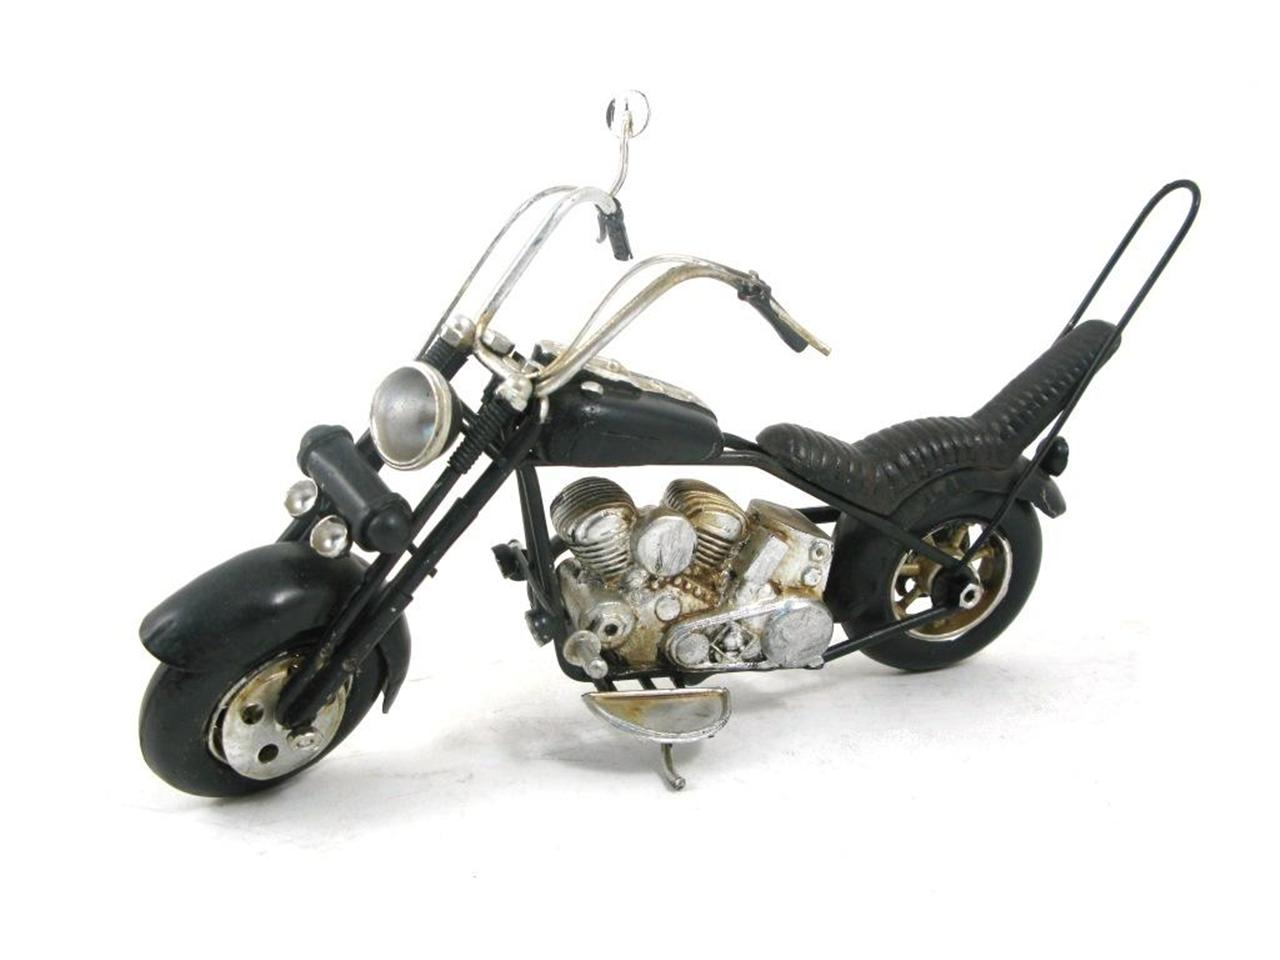 MINIATURE BLACK MOTORCYCLE